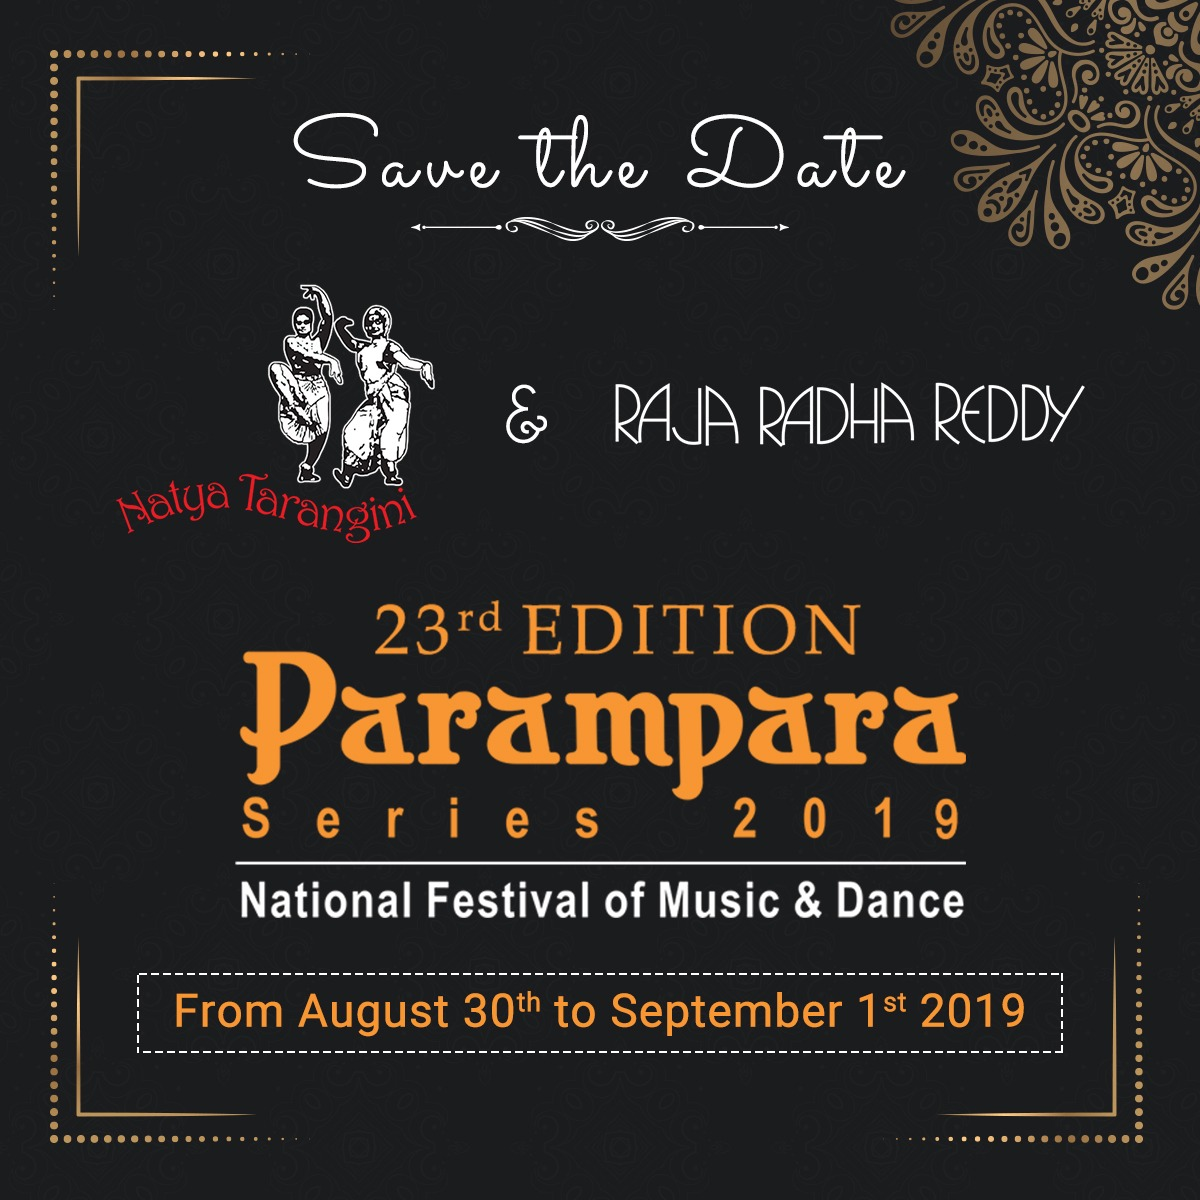 23rd Edition Parampara Series 2019